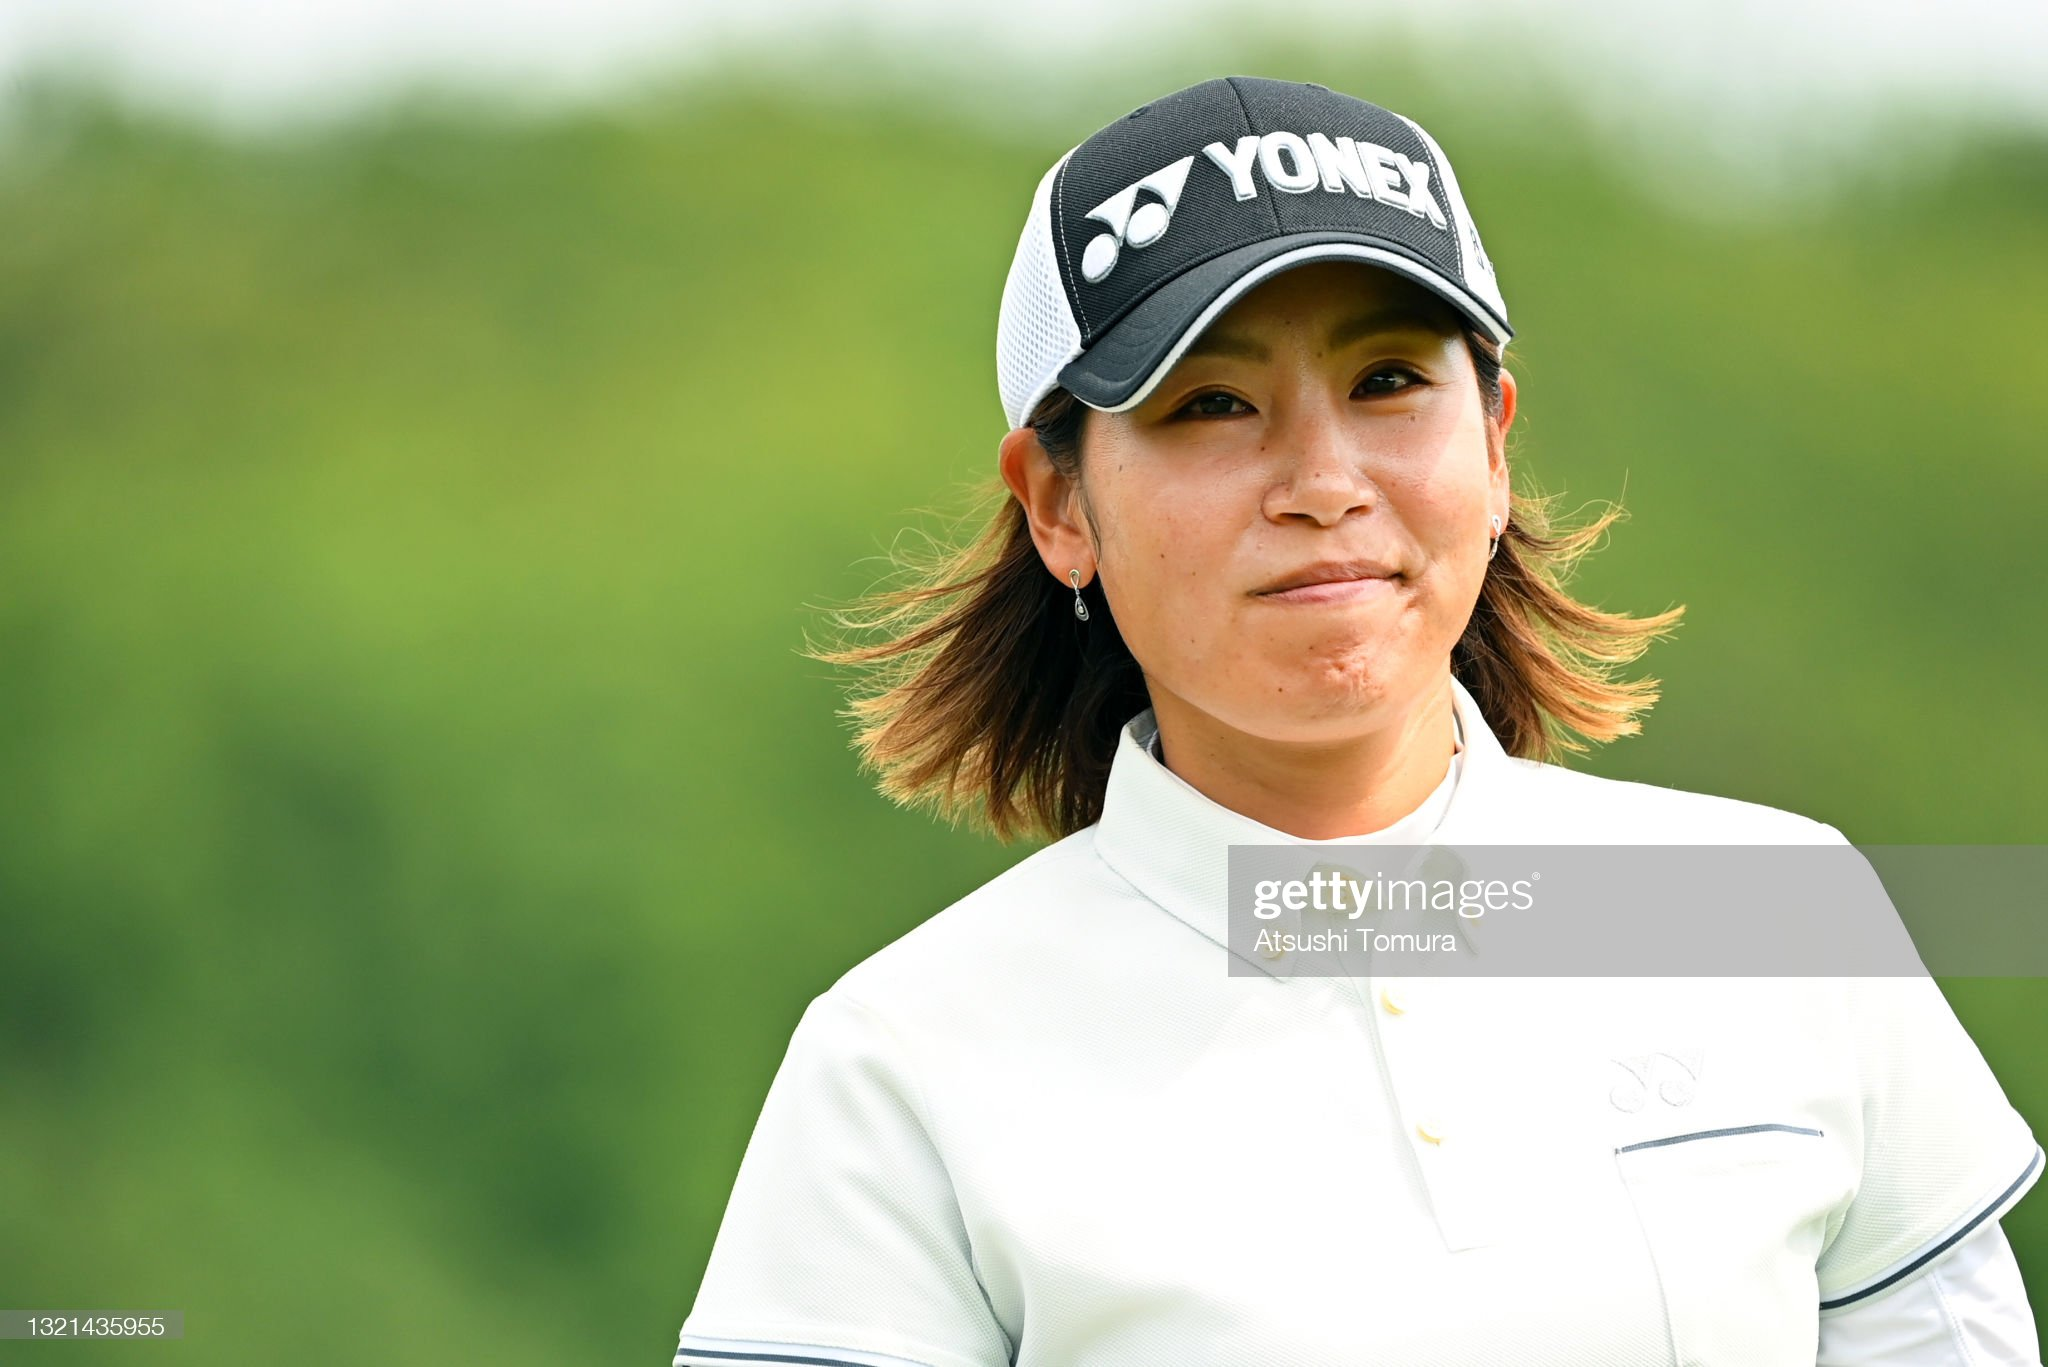 https://media.gettyimages.com/photos/maiko-wakabayashi-of-japan-smiles-during-the-practice-round-ahead-of-picture-id1321435955?s=2048x2048